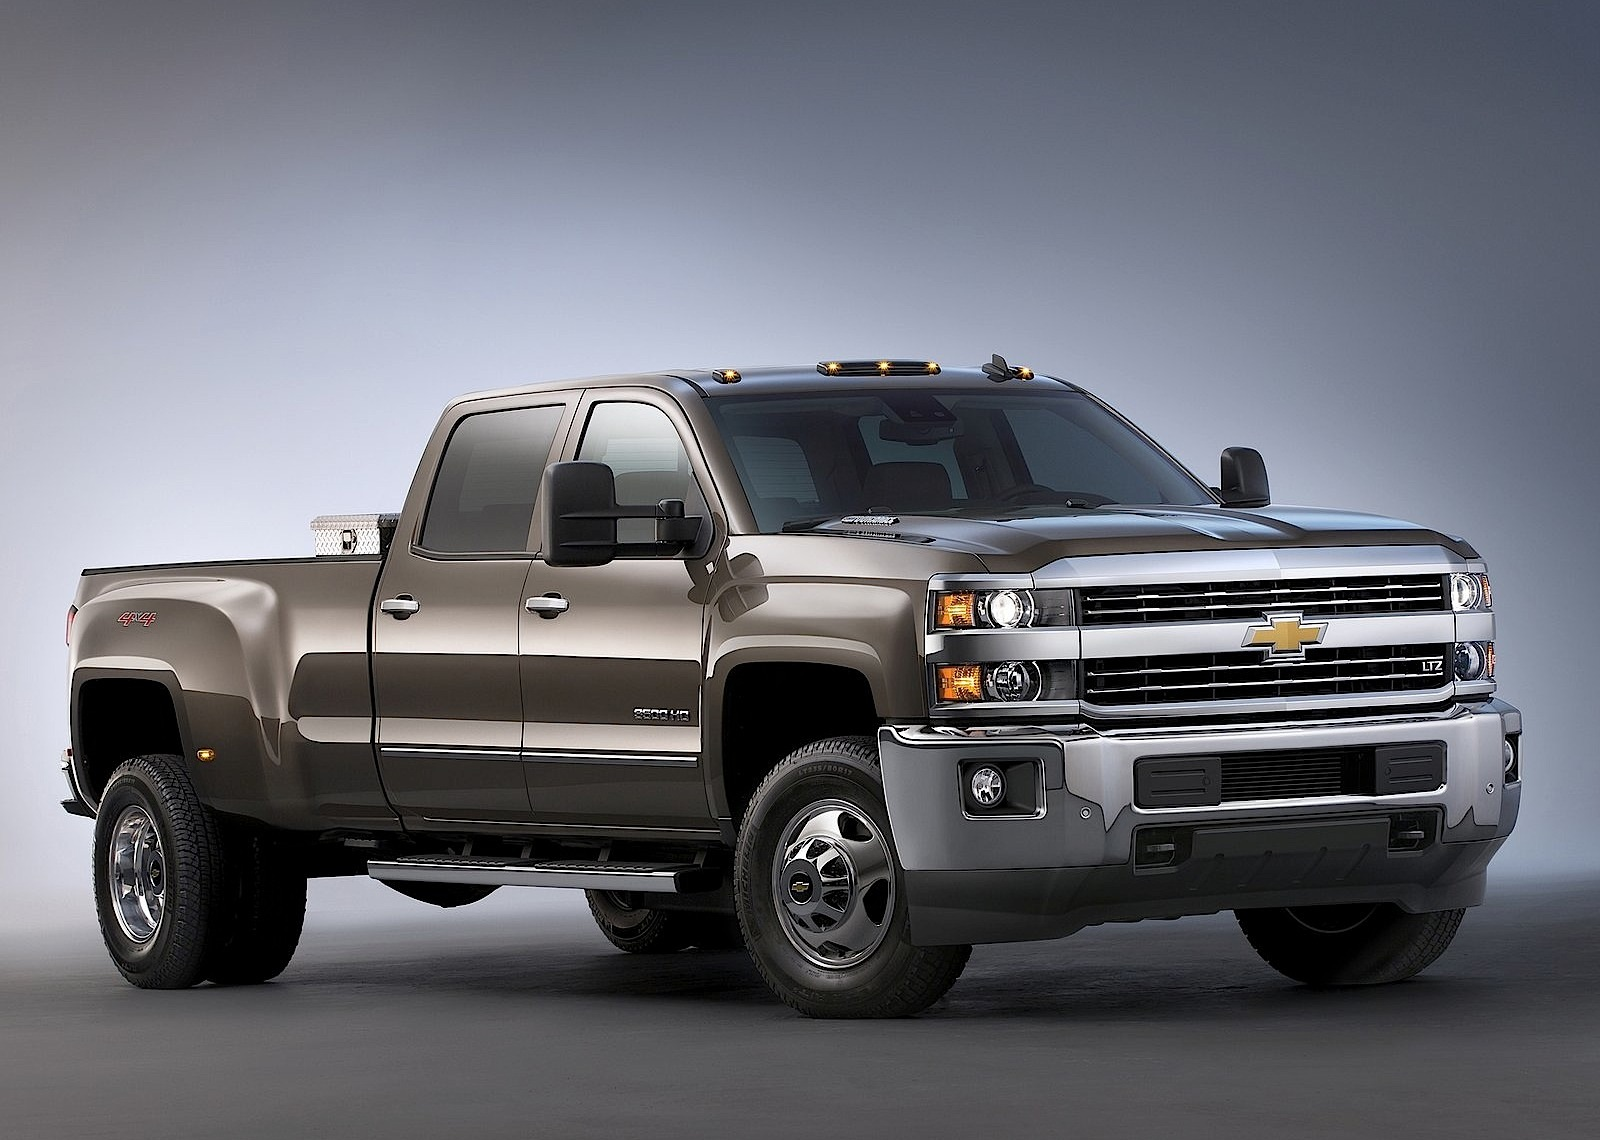 CHEVROLET Silverado 3500 HD Crew Cab specs & photos - 2013 ...